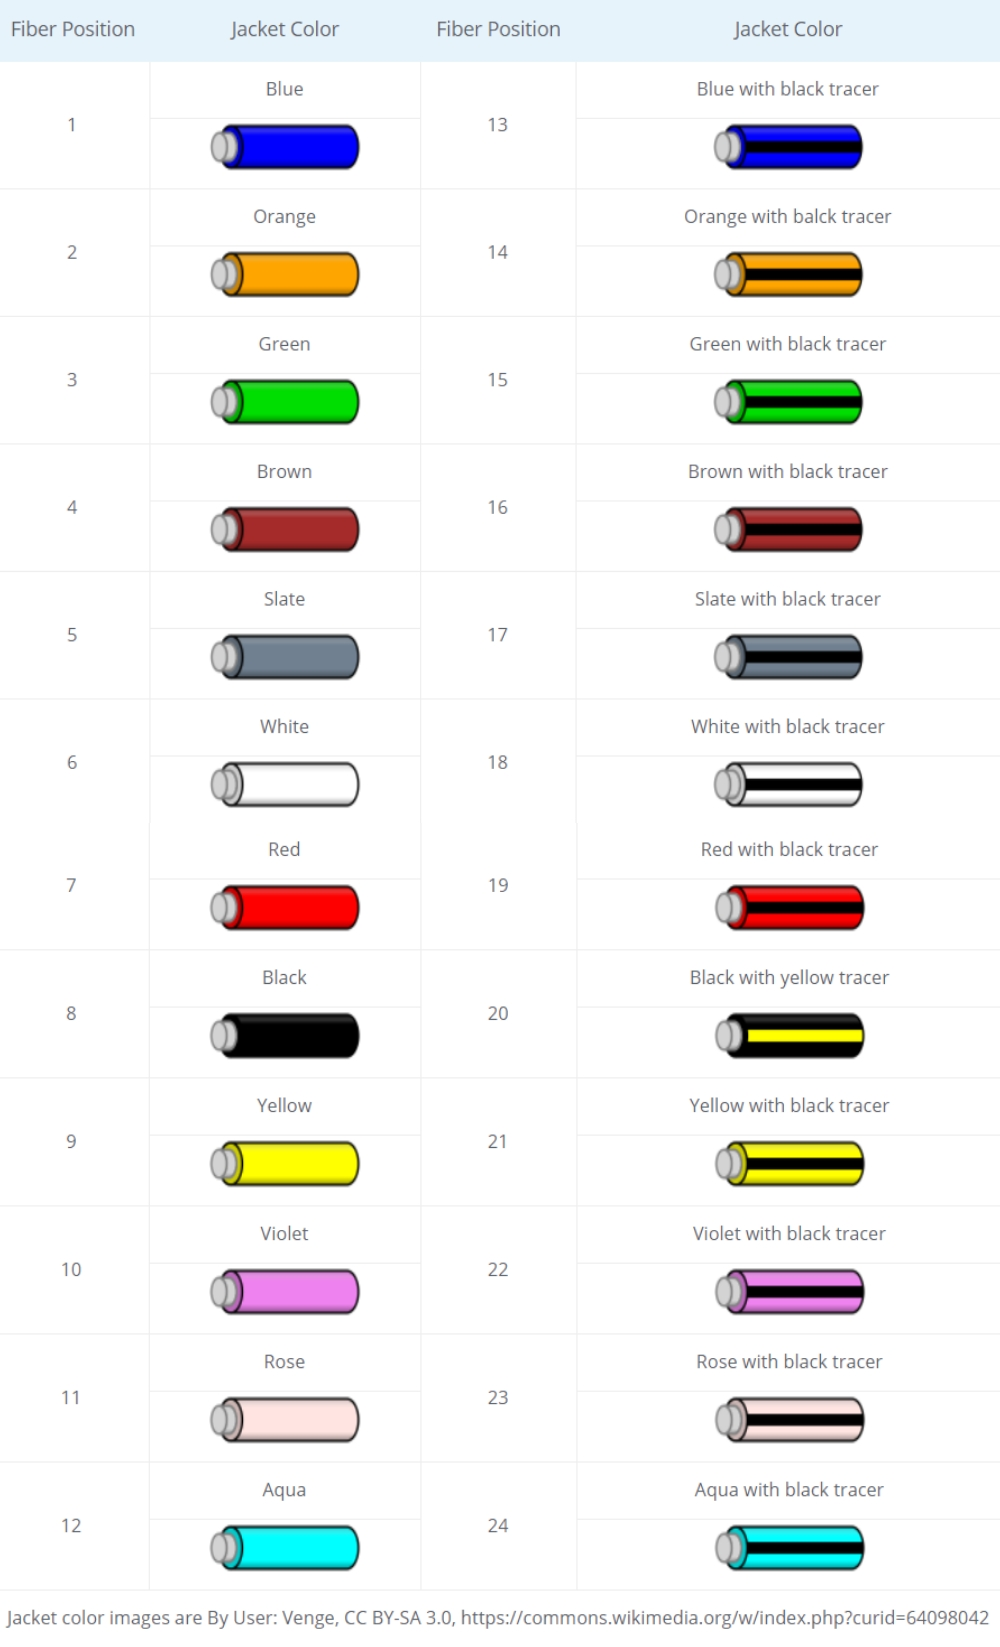 medium resolution of fiber patch cord color code for inner cable organization